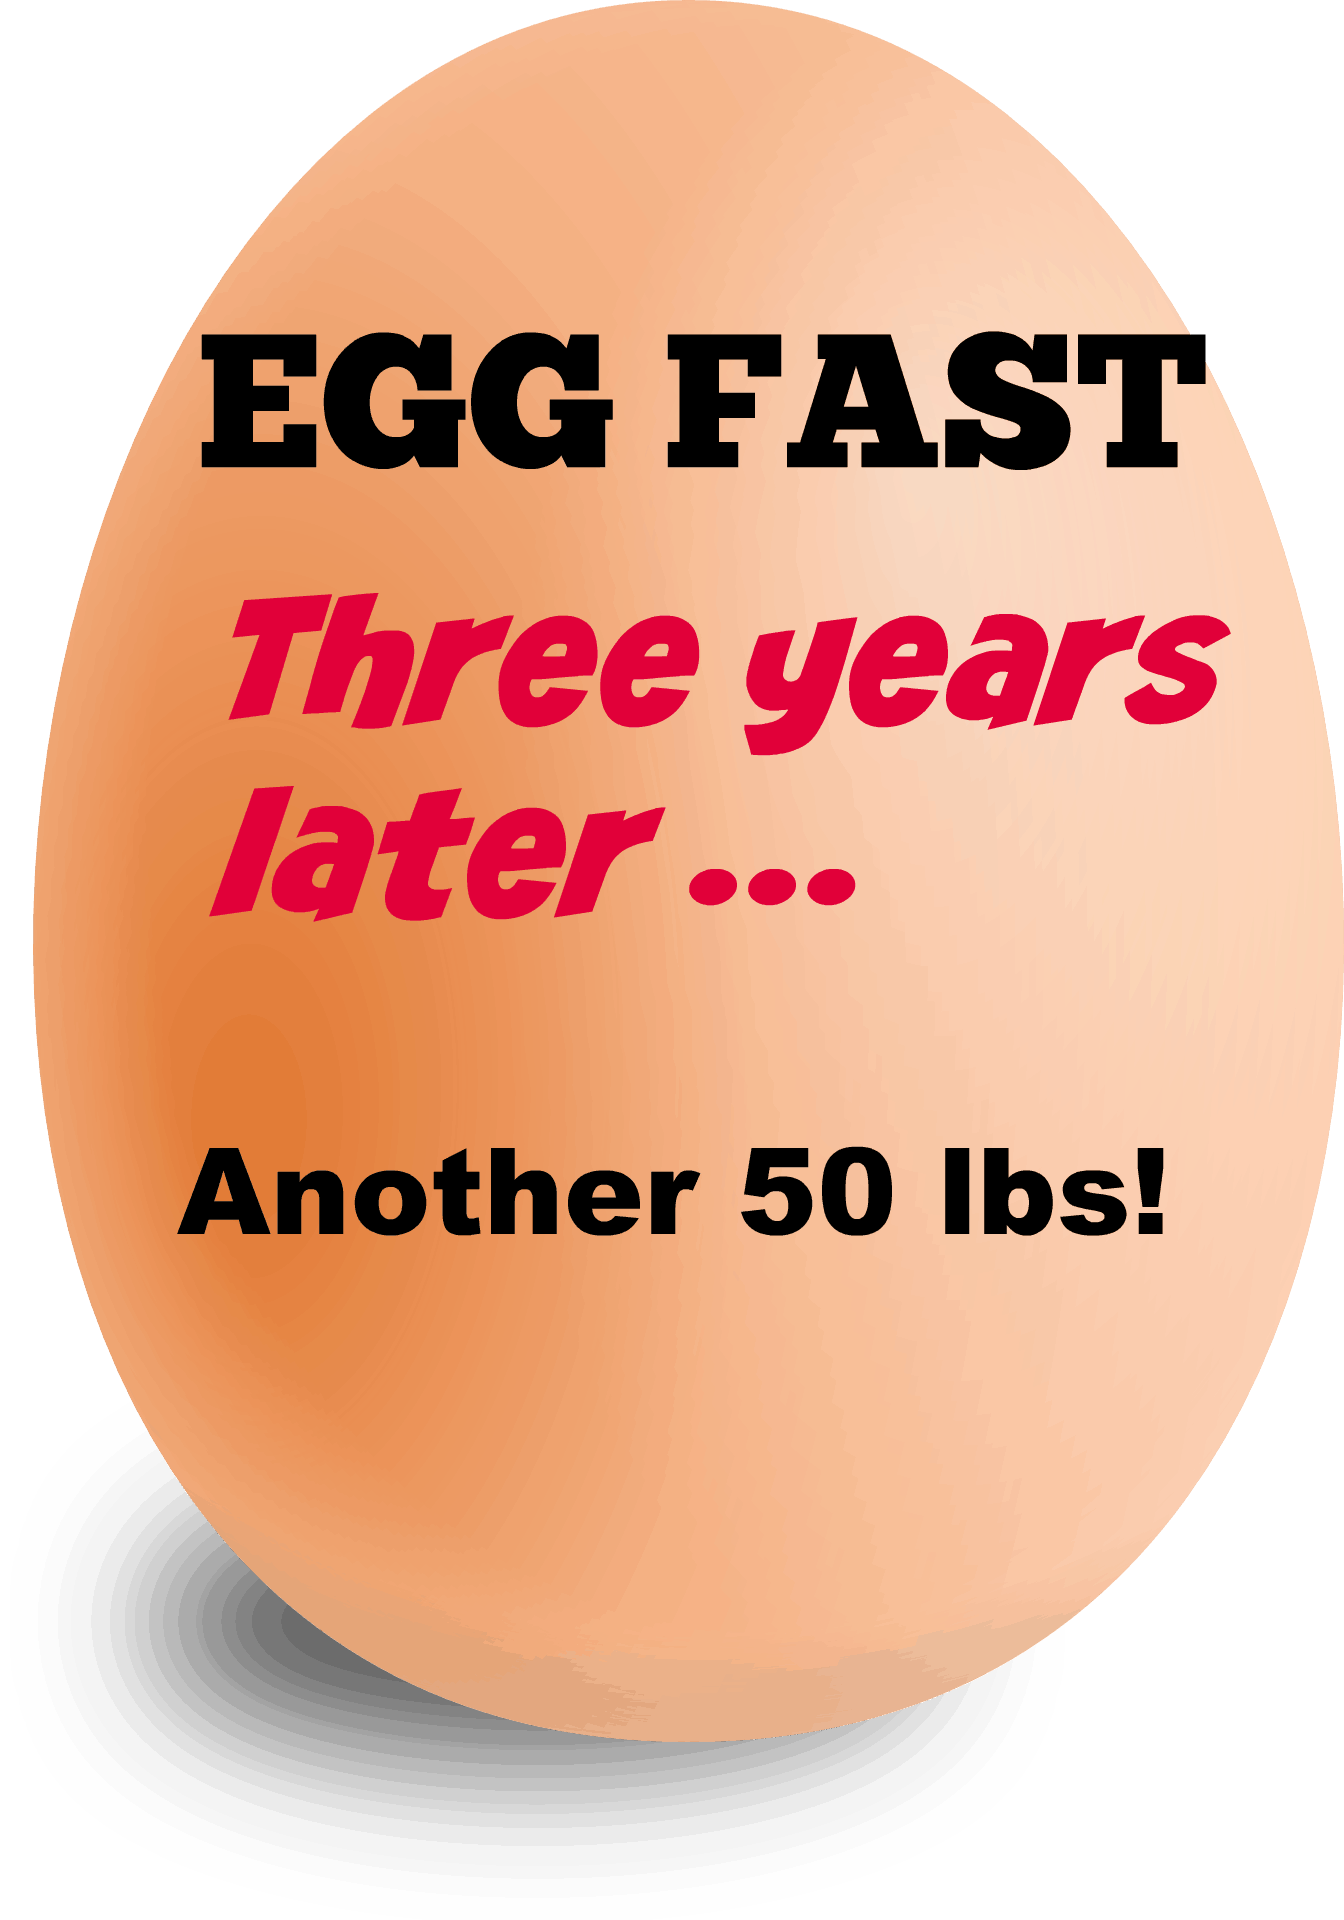 Keto Egg Fast Diet: All You Need To Know About This 5-Day Low Carb Weight Loss Diet